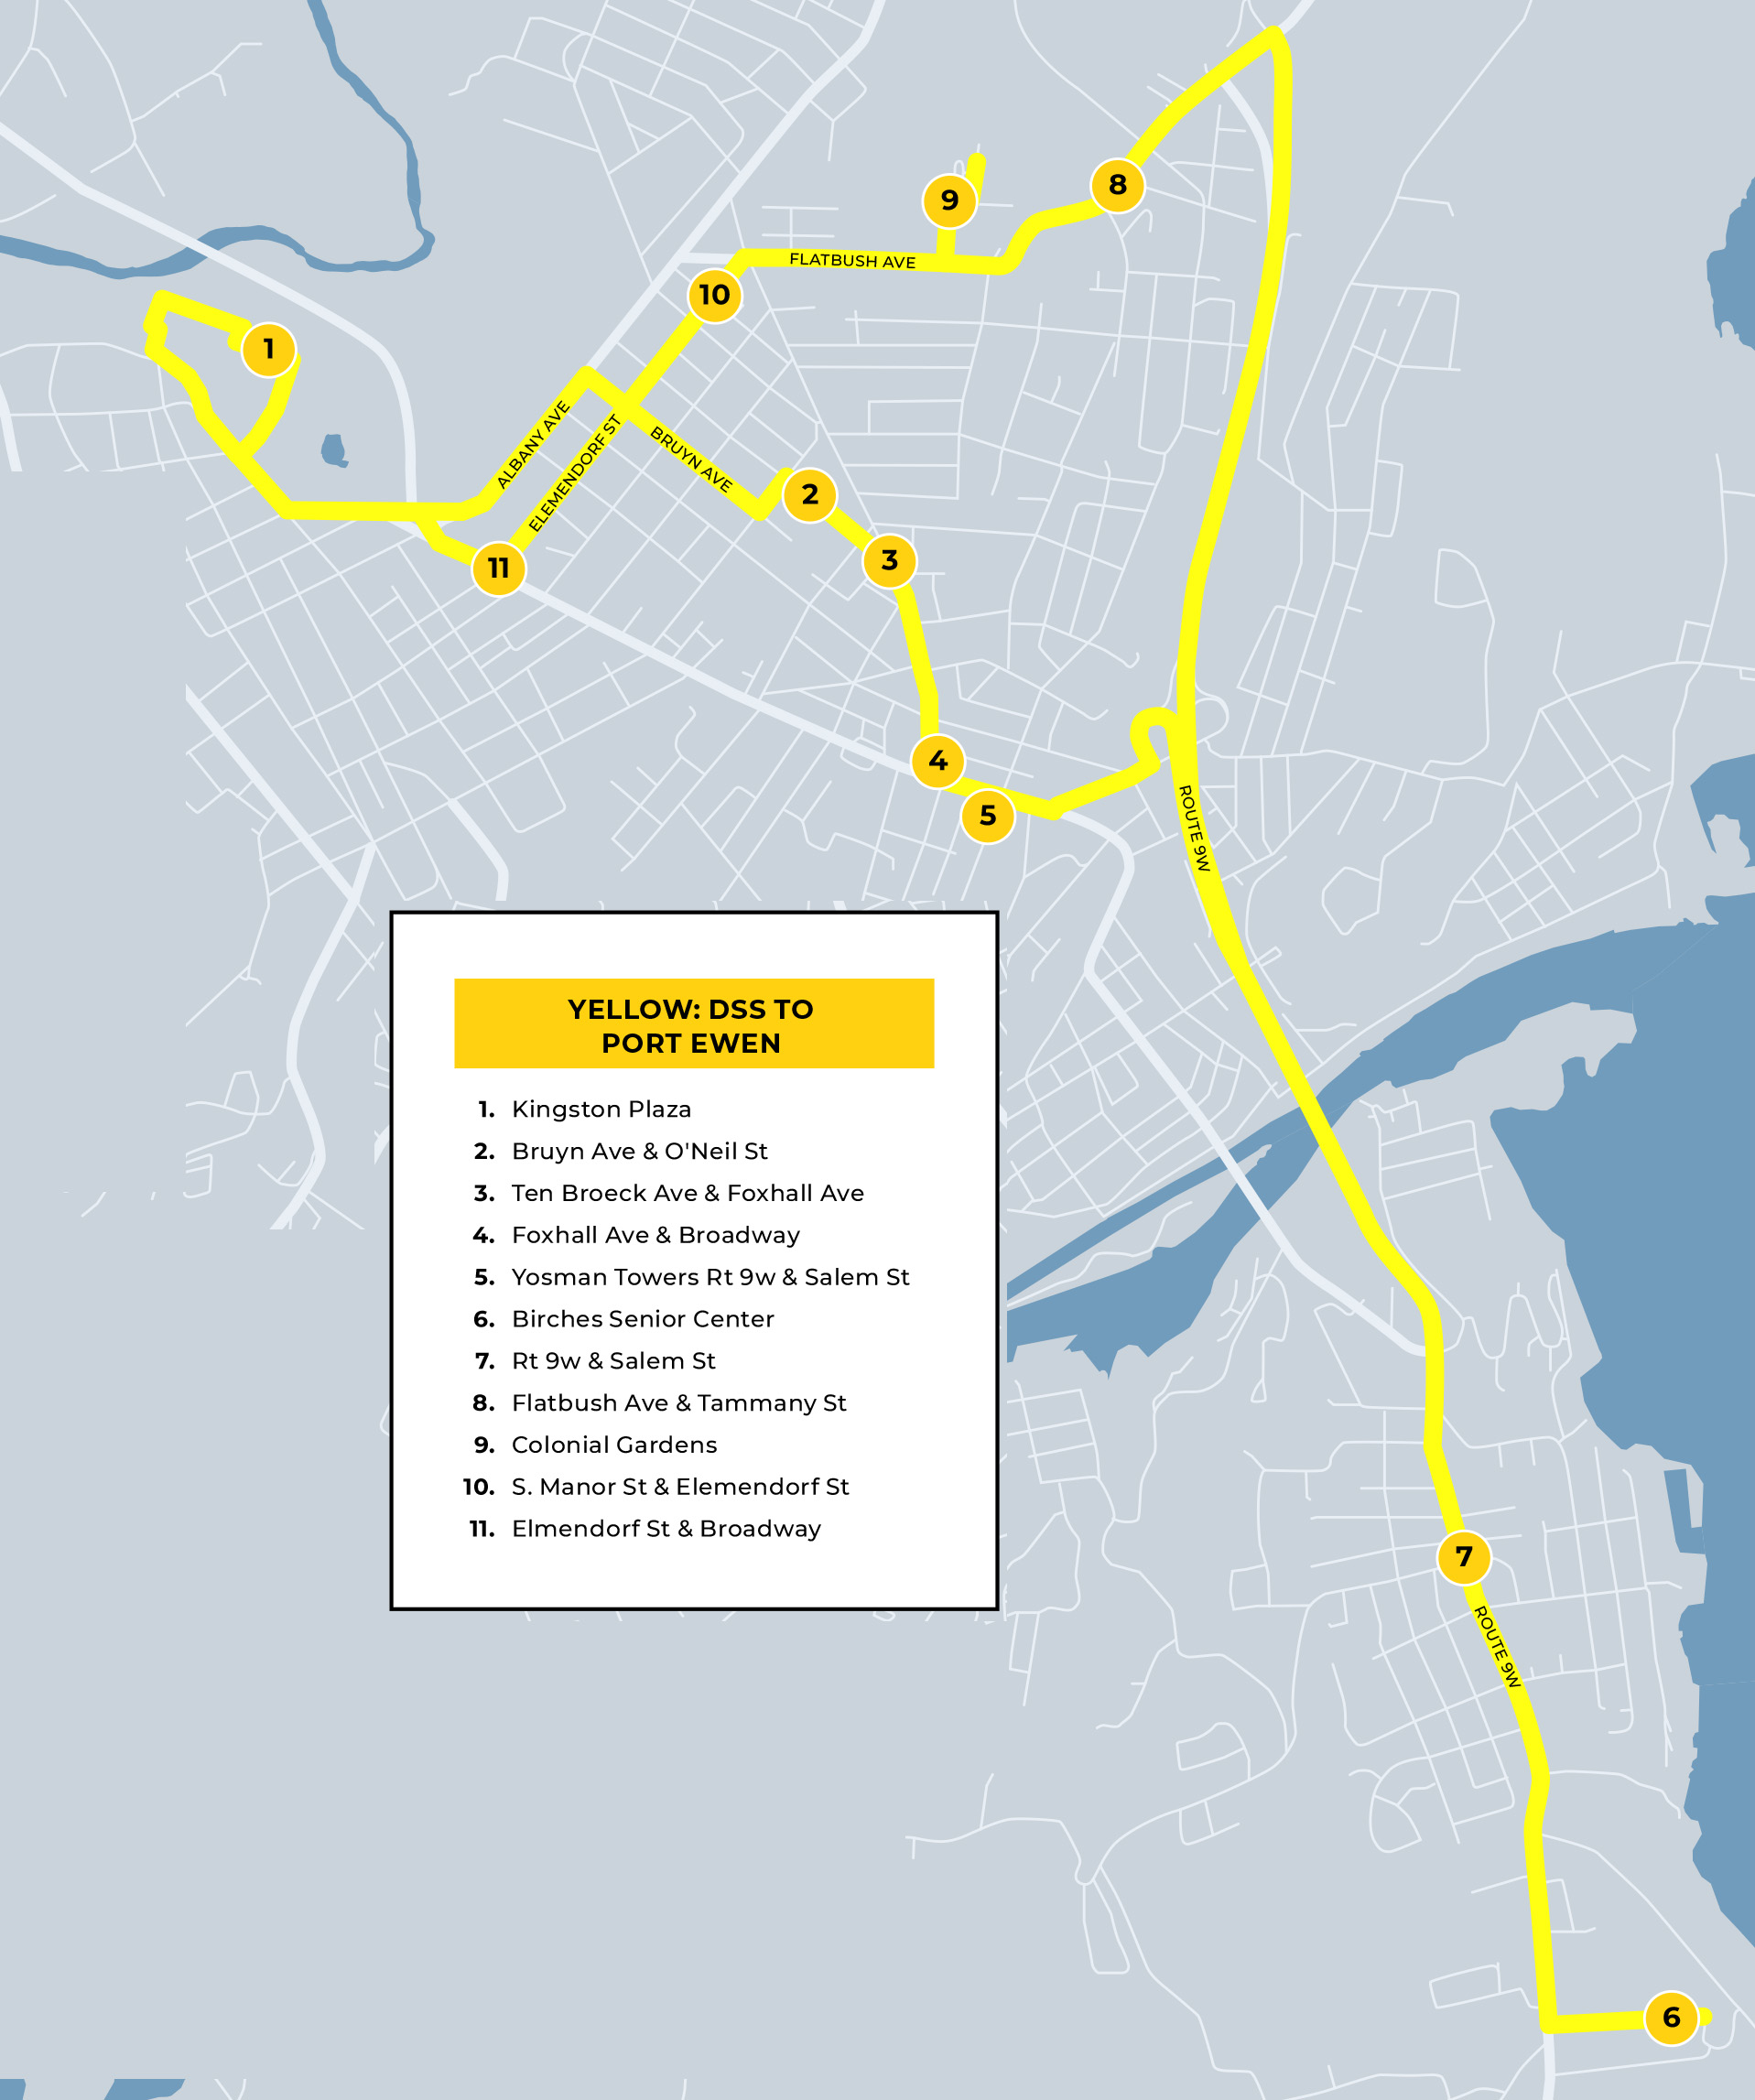 yellow route map